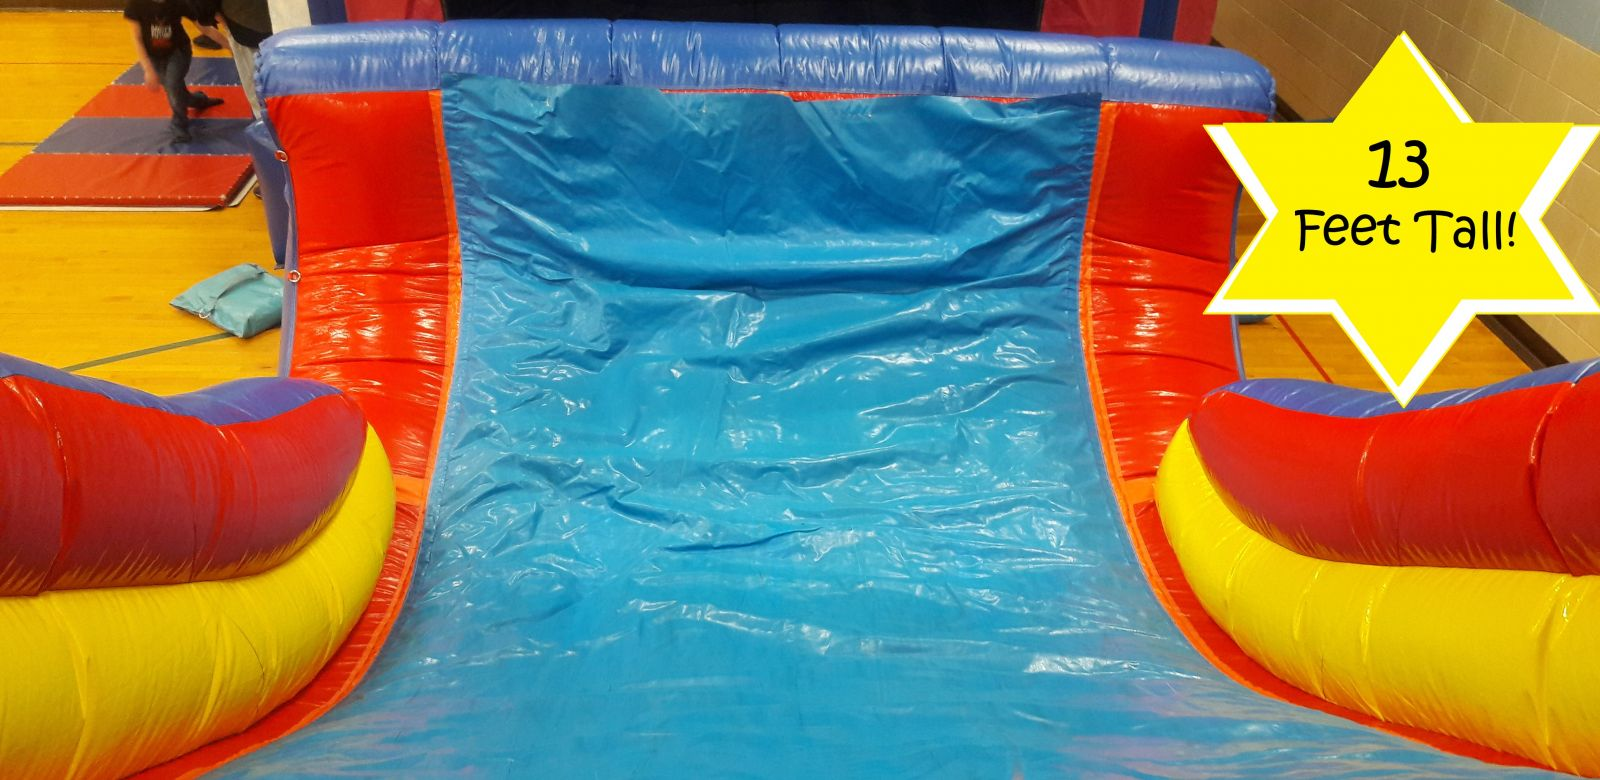 Slide view from the top of the climbing wall on the inflatable obstacle course